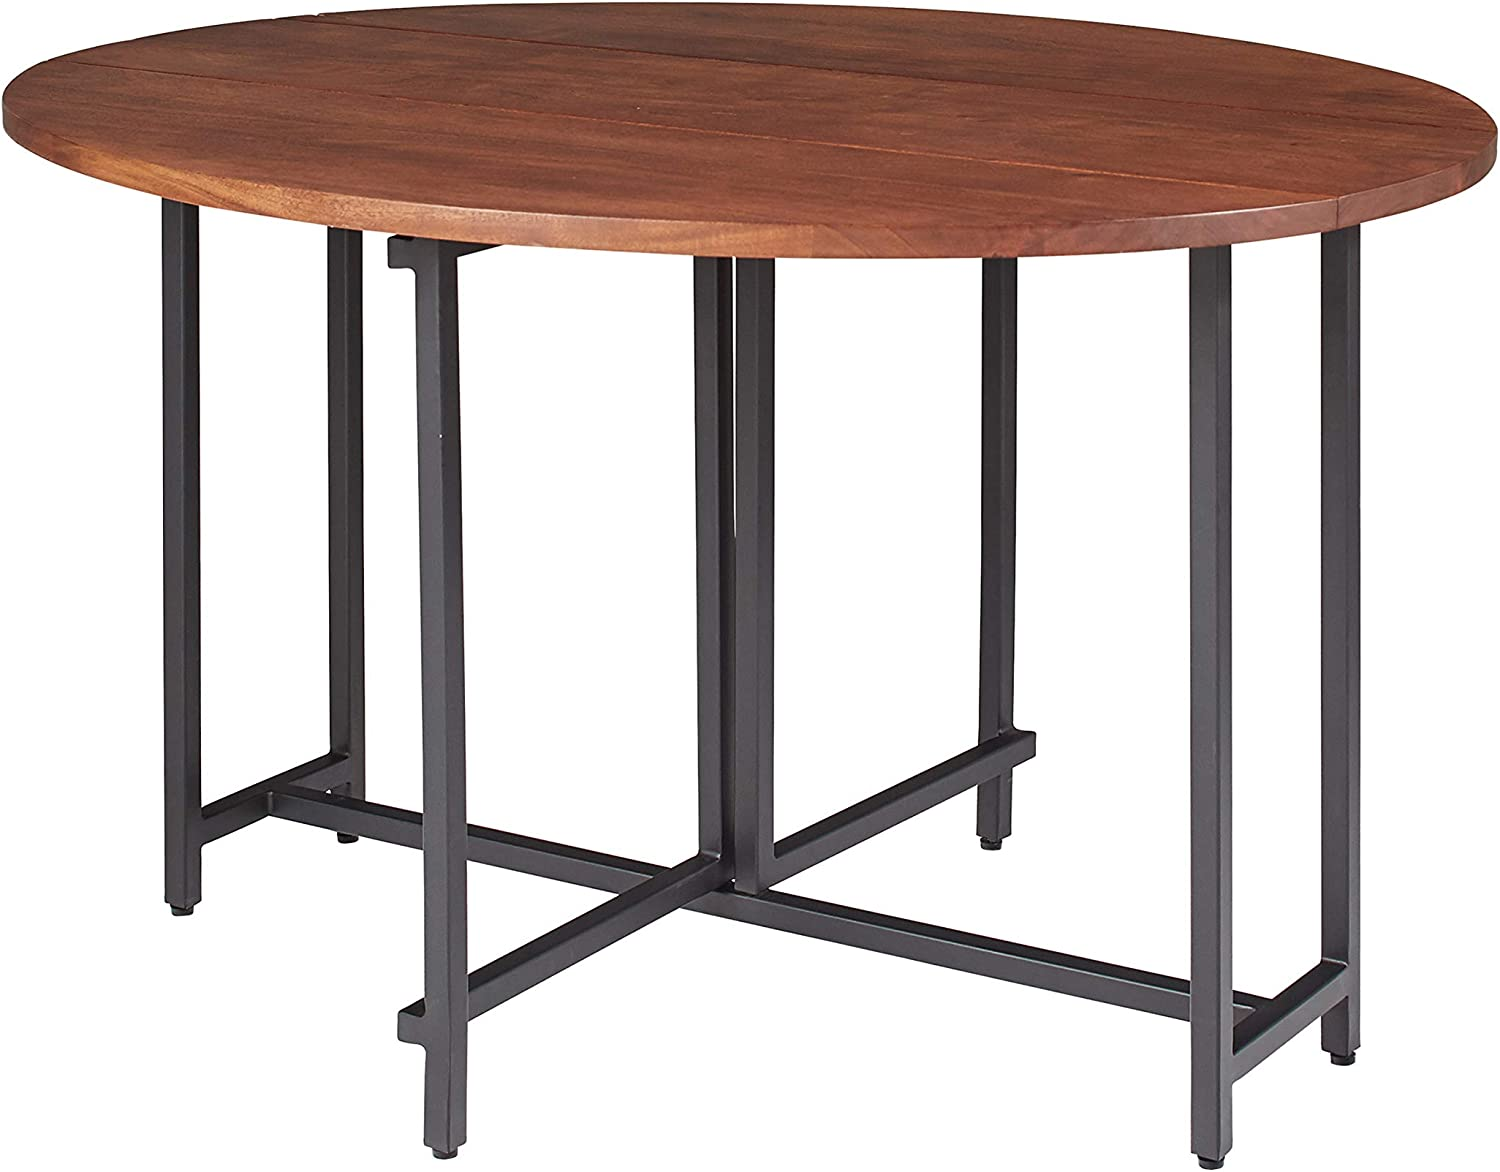 Coaster Home Furnishings Bridgeport Oval Two Drop Leaves Warm Brown Dining Table